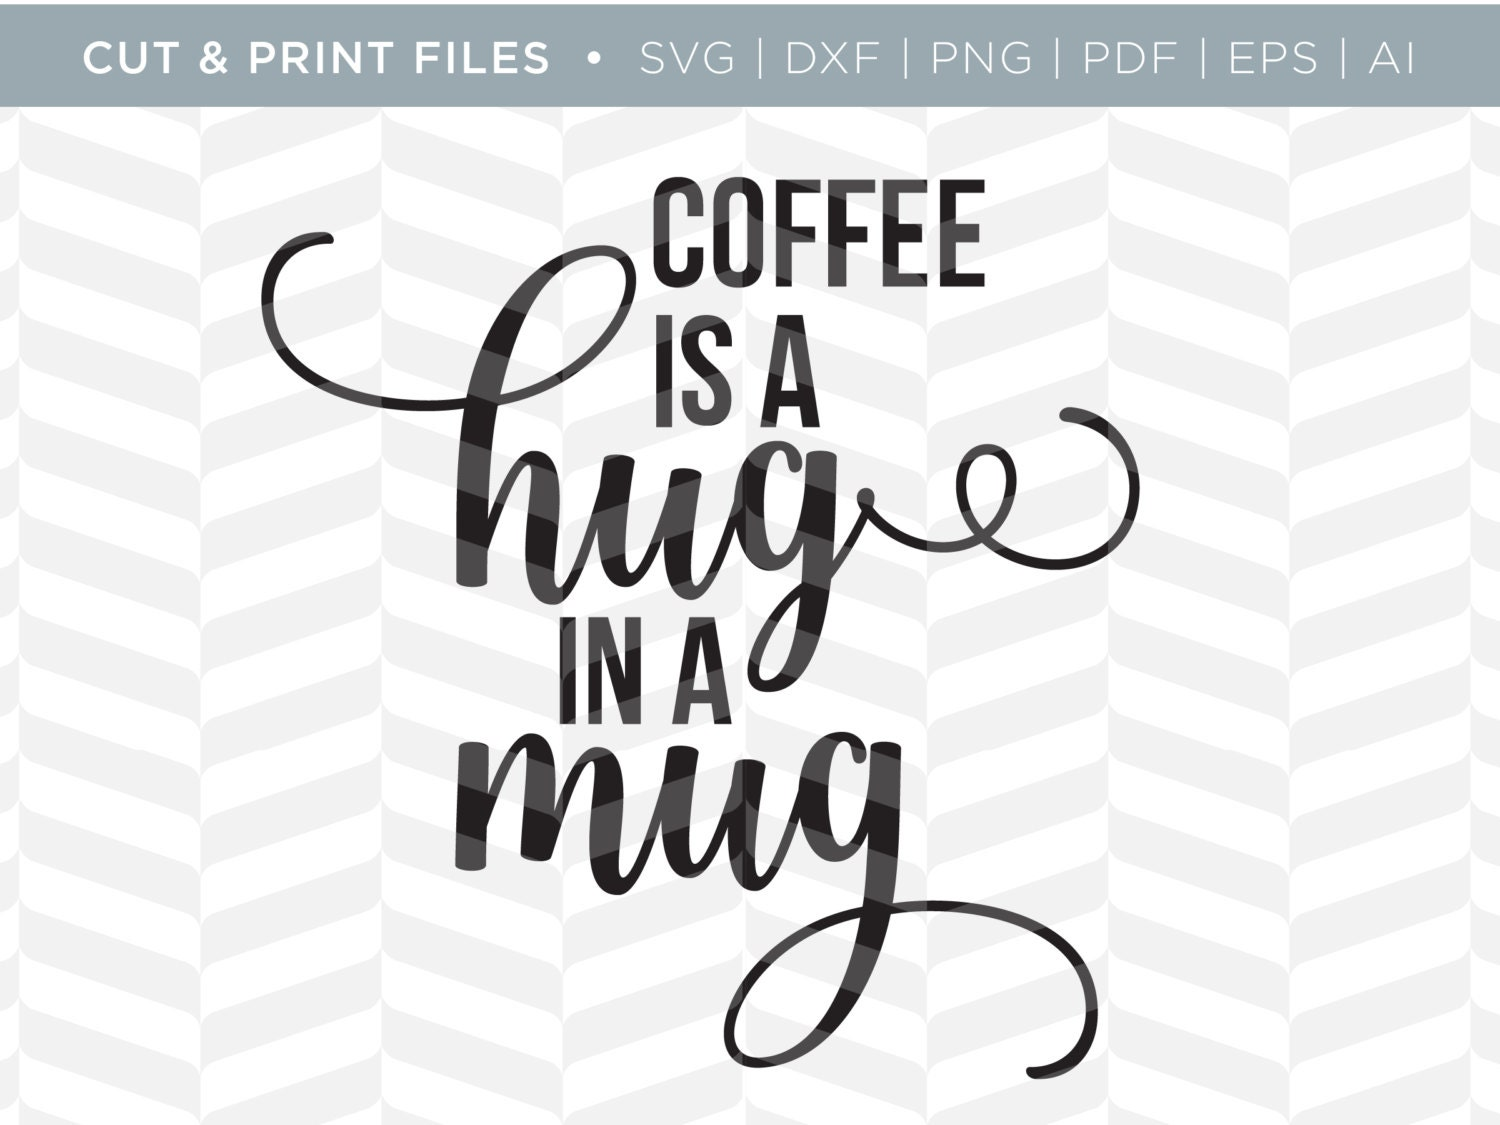 Download SVG Cut / Print Files Hug in a Mug Coffee Quote SVG